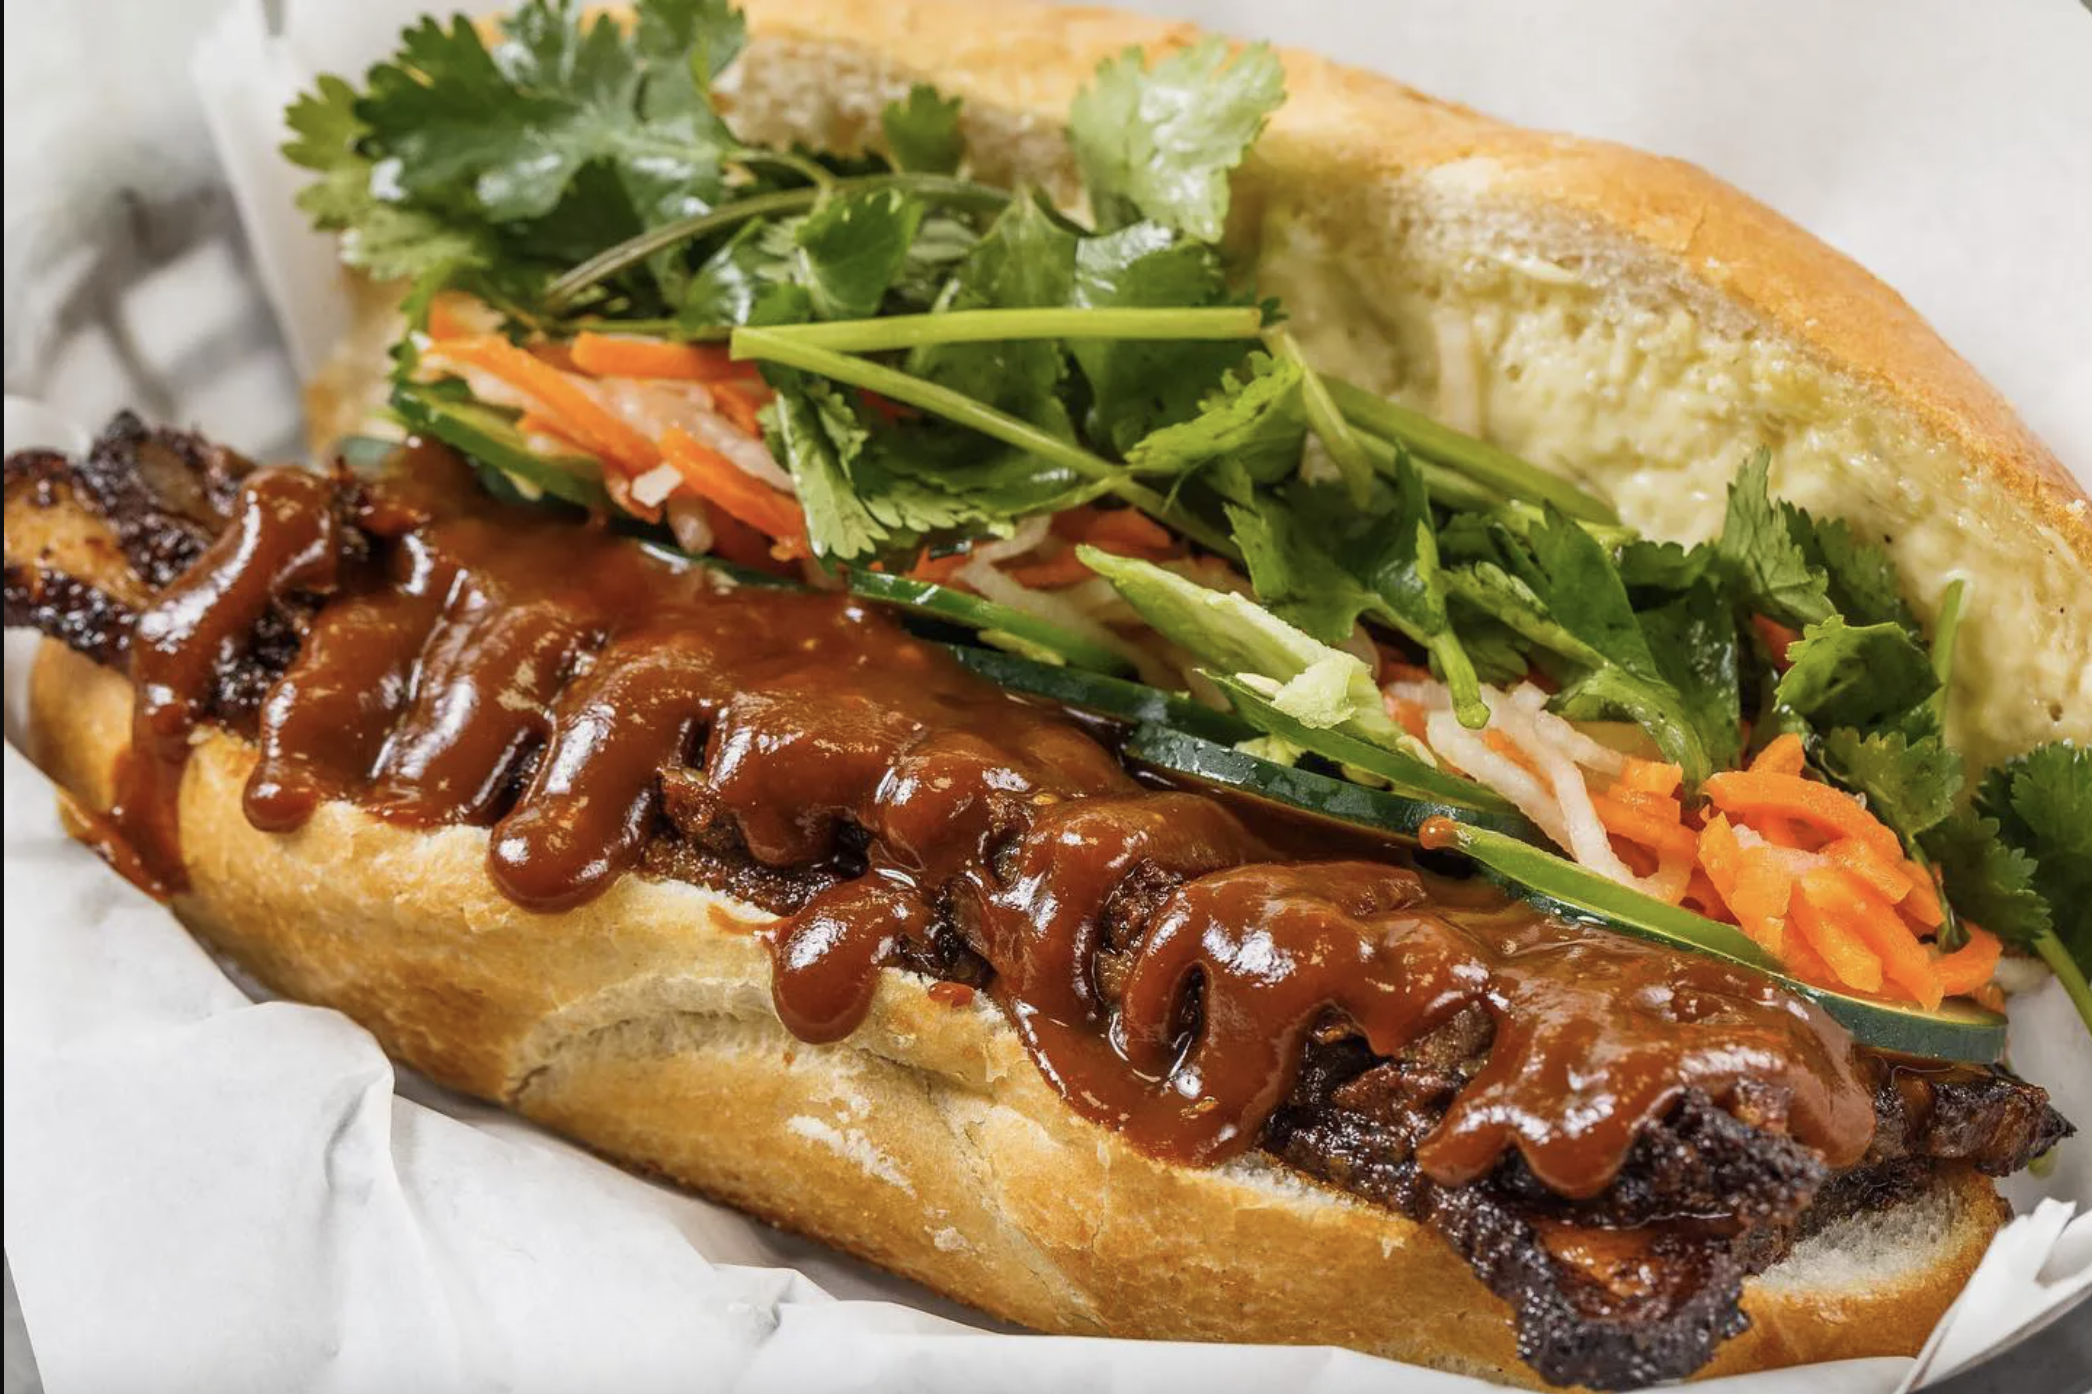 A baguette with saucy brisket comes topped with carrots, cucumbers, radish, and cilantro at Banh Mi Boys.